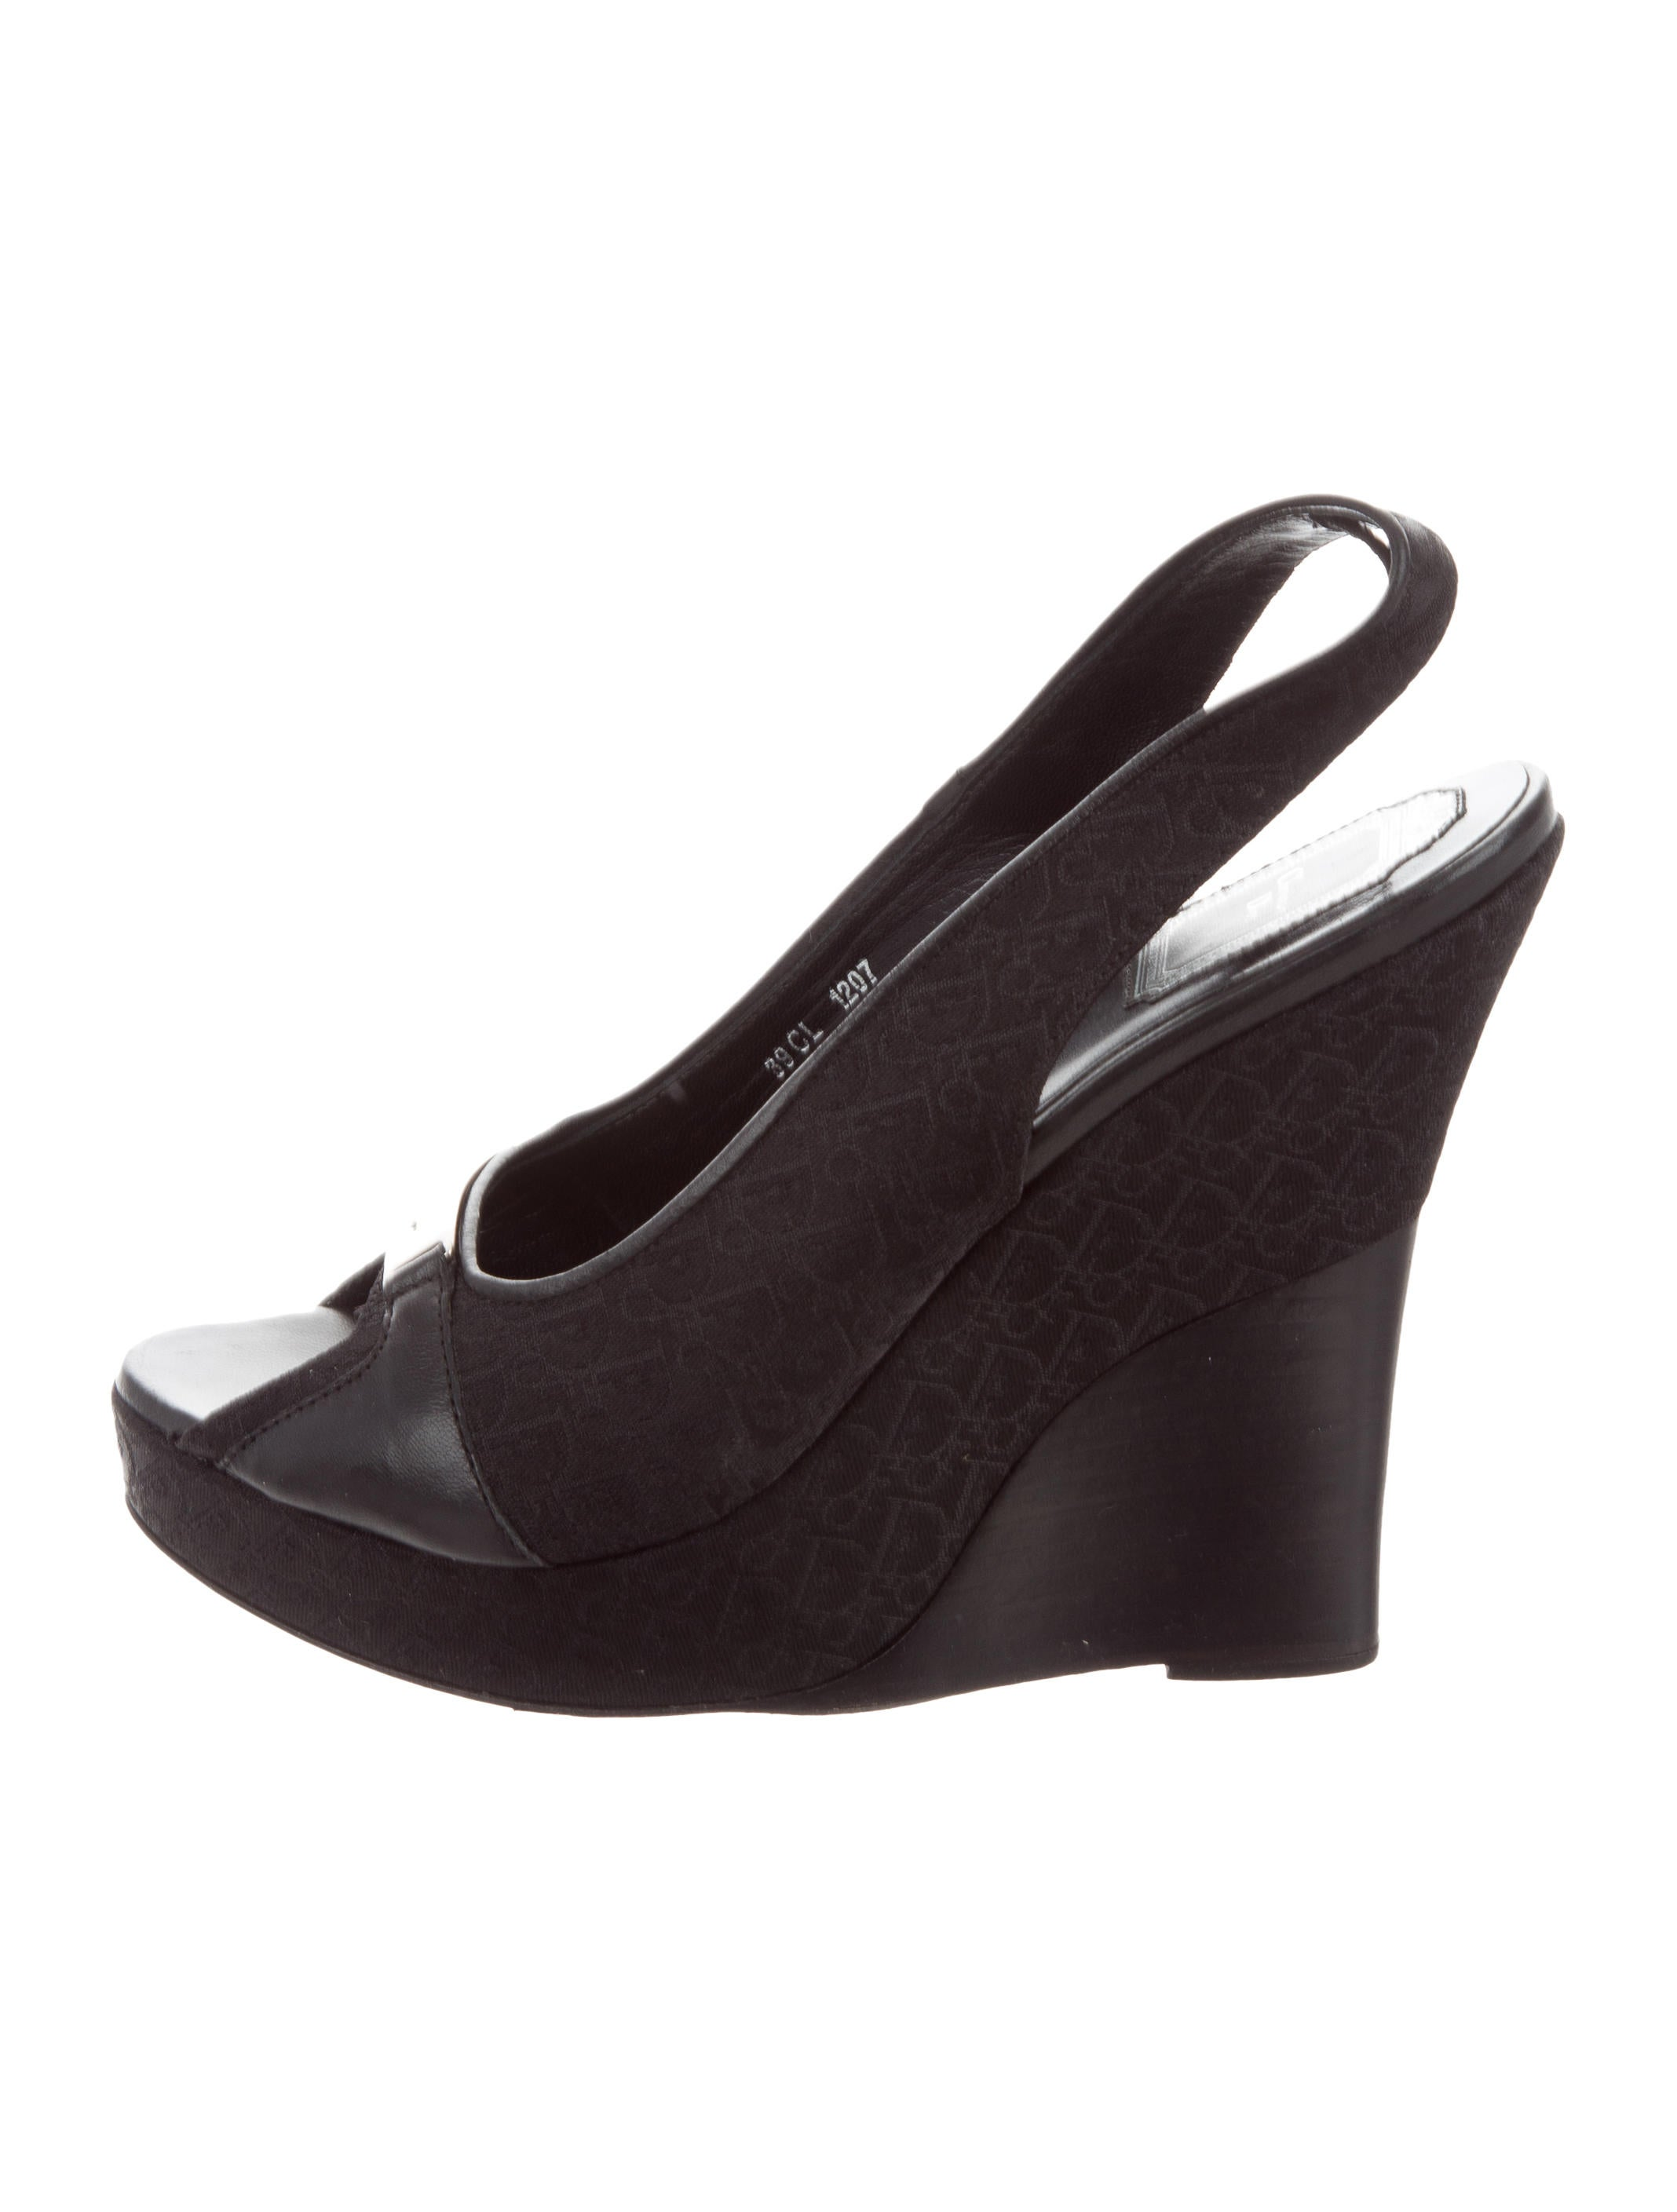 Christian Dior Diorissimo Wedge Sandals outlet order cost cheap price clearance great deals clearance store 0Ka3W66e5V